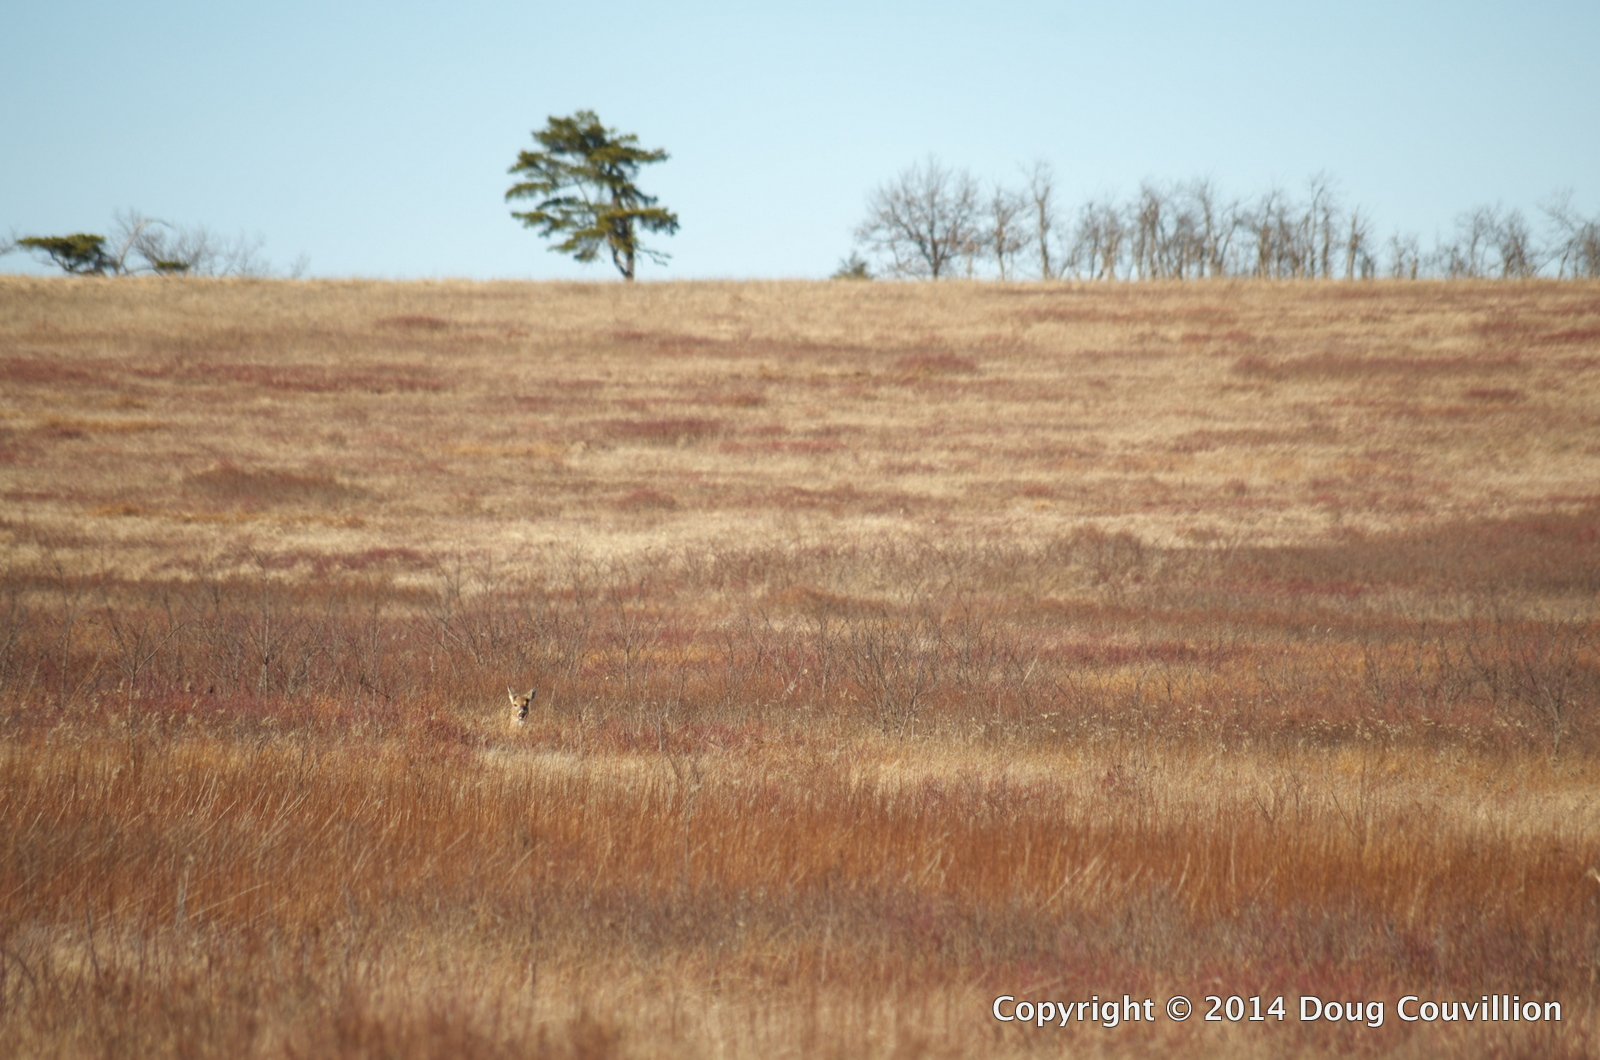 Photograph of a whilte-tailed deer resting in a meadow